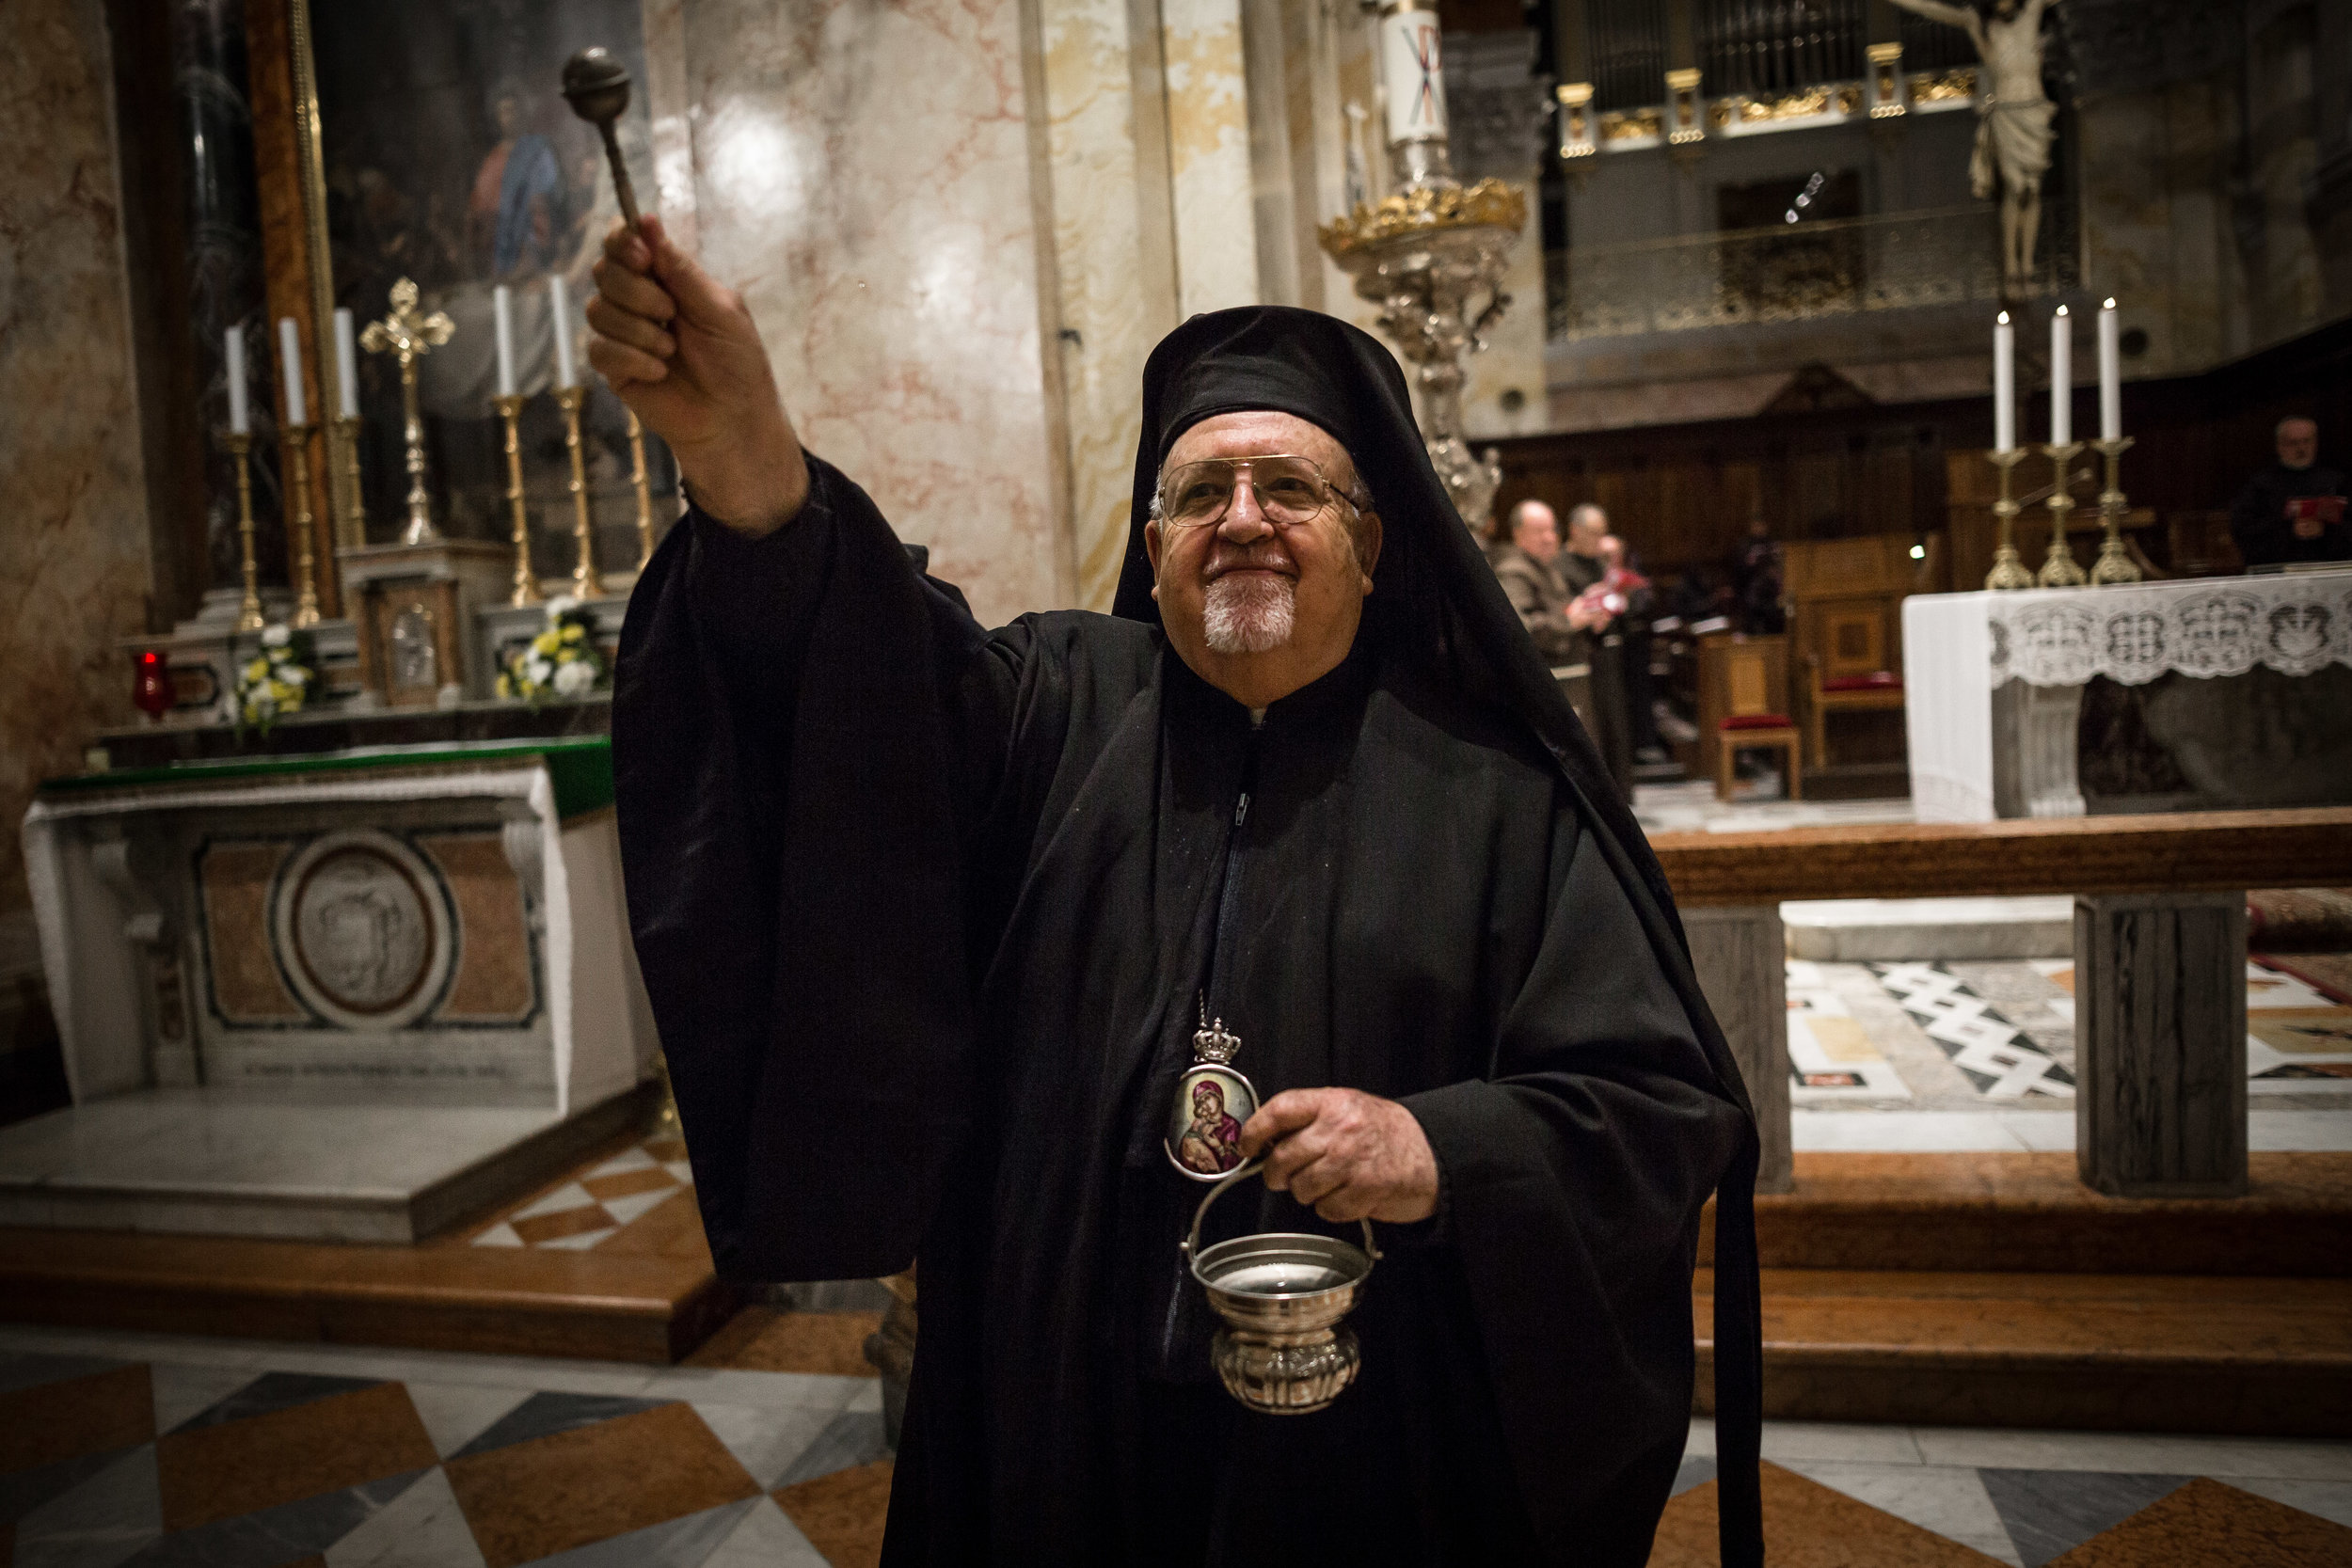 Joseph Jules Zerey, Archbishop of the Melkite Greek Catholic Church and Apostolic Vicar of Jerusalem takes part on the week of prayer in the Franciscan Monastery of San Salvador During in Jerusalem's Old City.